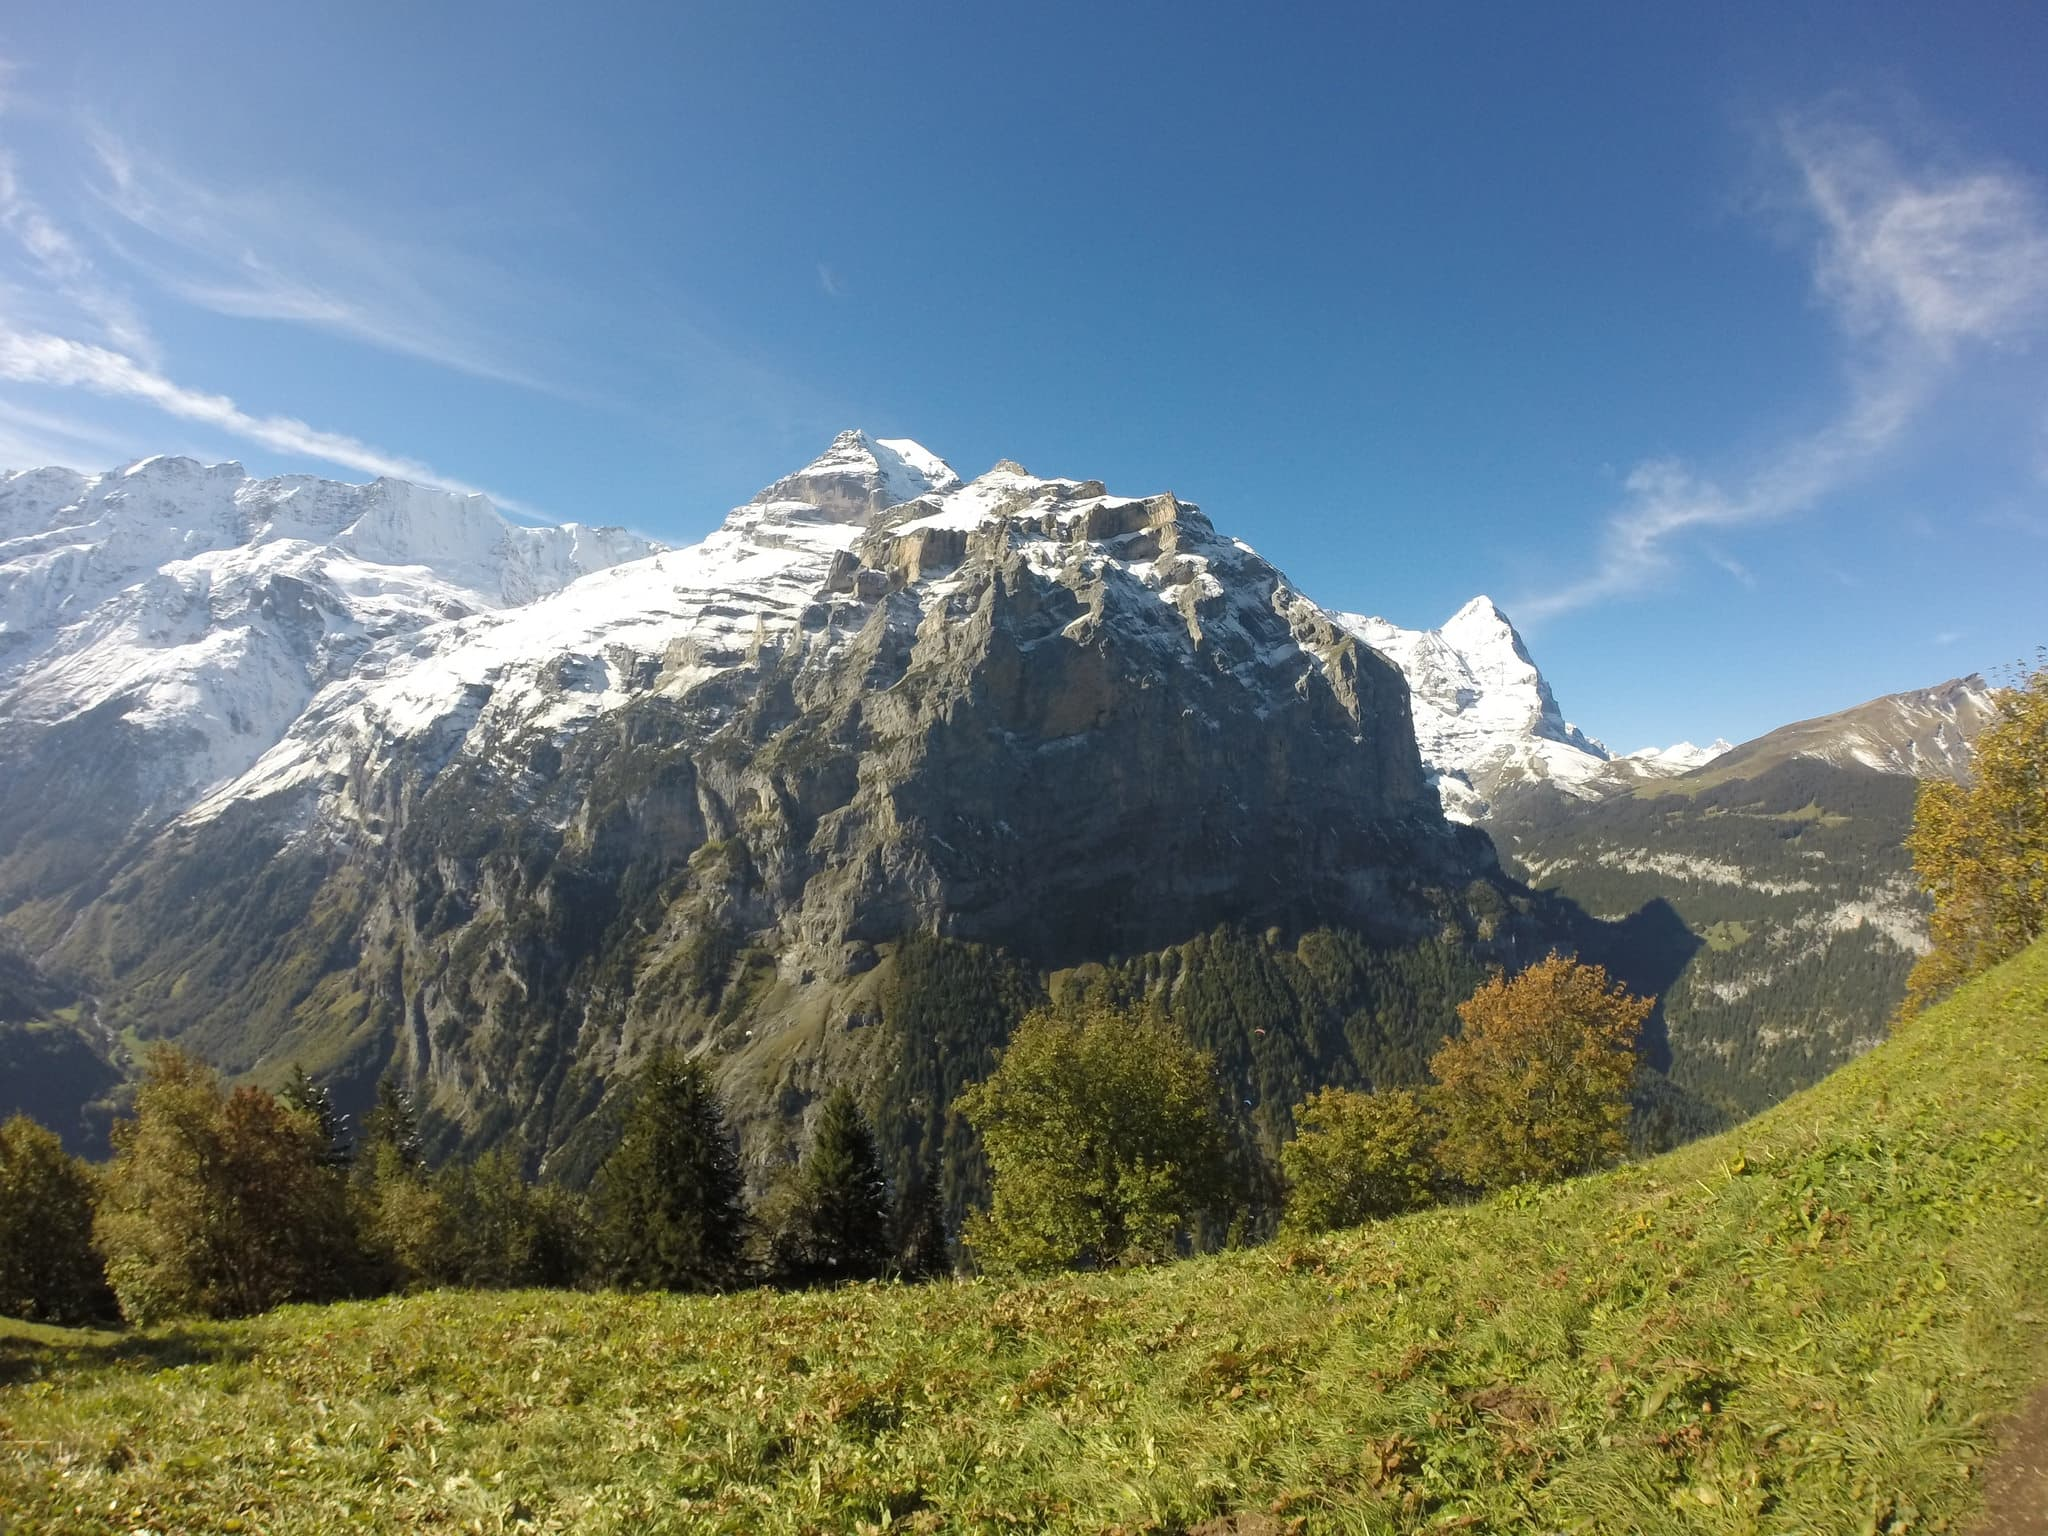 Switzerland Mountain Jungfrau Hd Desktop Wallpapers